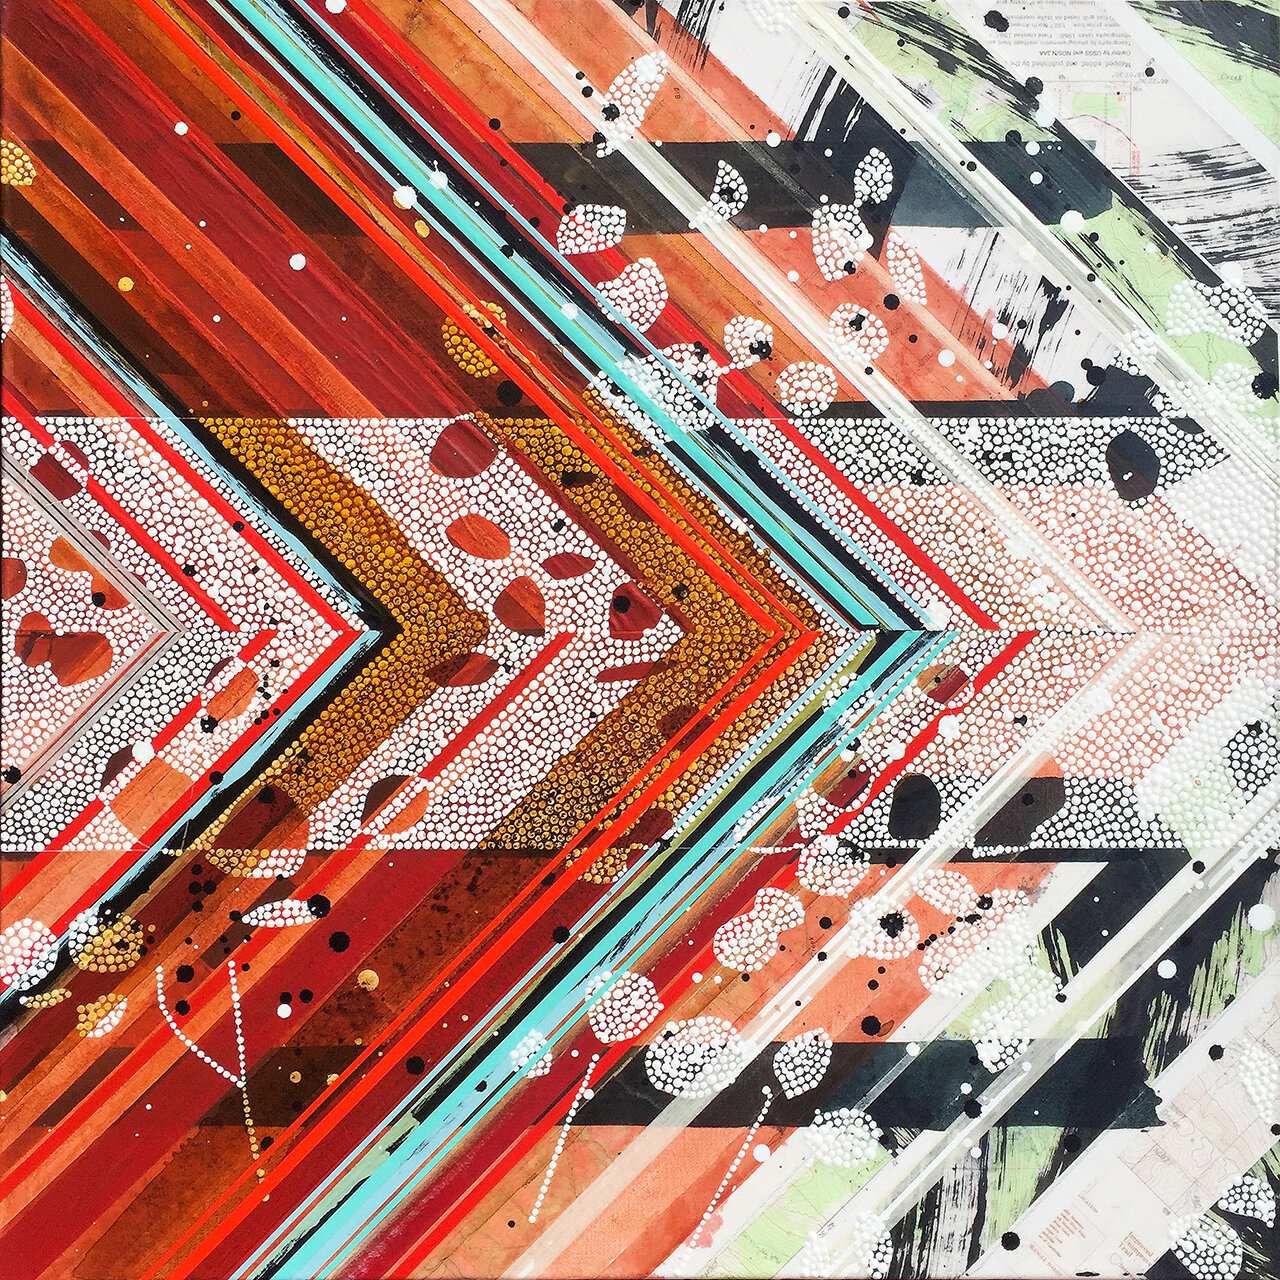 """Flourish 2 (Thrive) / Mapping Series / 201624""""h x 24""""w x 1.5""""d; 24.5""""h x 24""""w x 1.5""""d framed / Painting and collage on canvas / Custom framed in aluminum"""